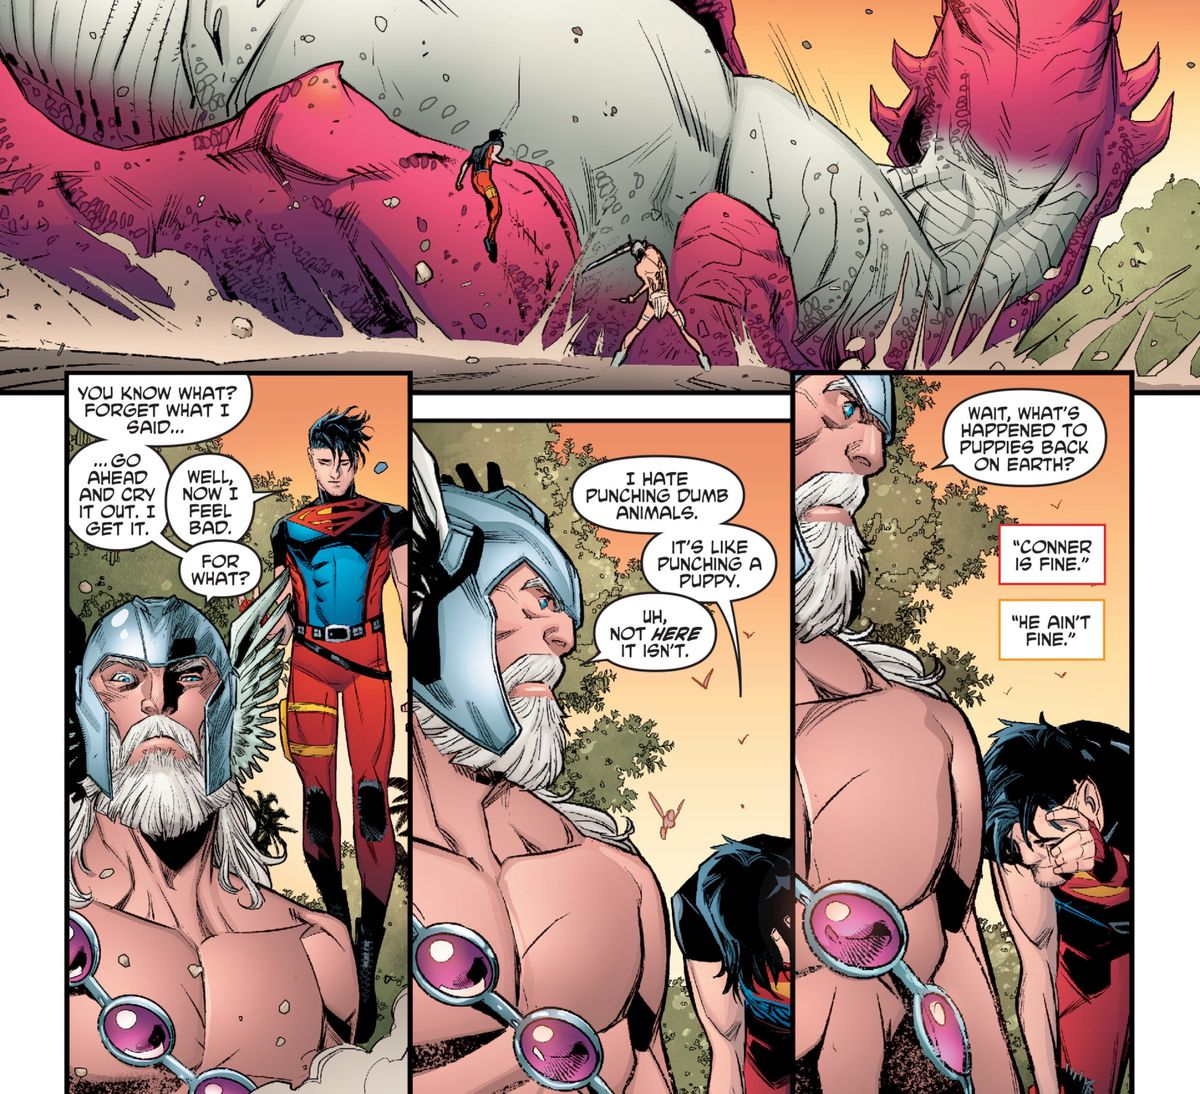 """Superboy punches a large T-rex unconscious, and talks about how he hates punching dumb animals. """"It's like punching a puppy."""" """"Wait, what's happened to puppies back on Earth?"""" asks Warlord, in Young Justice #12, DC Comics (2020)."""